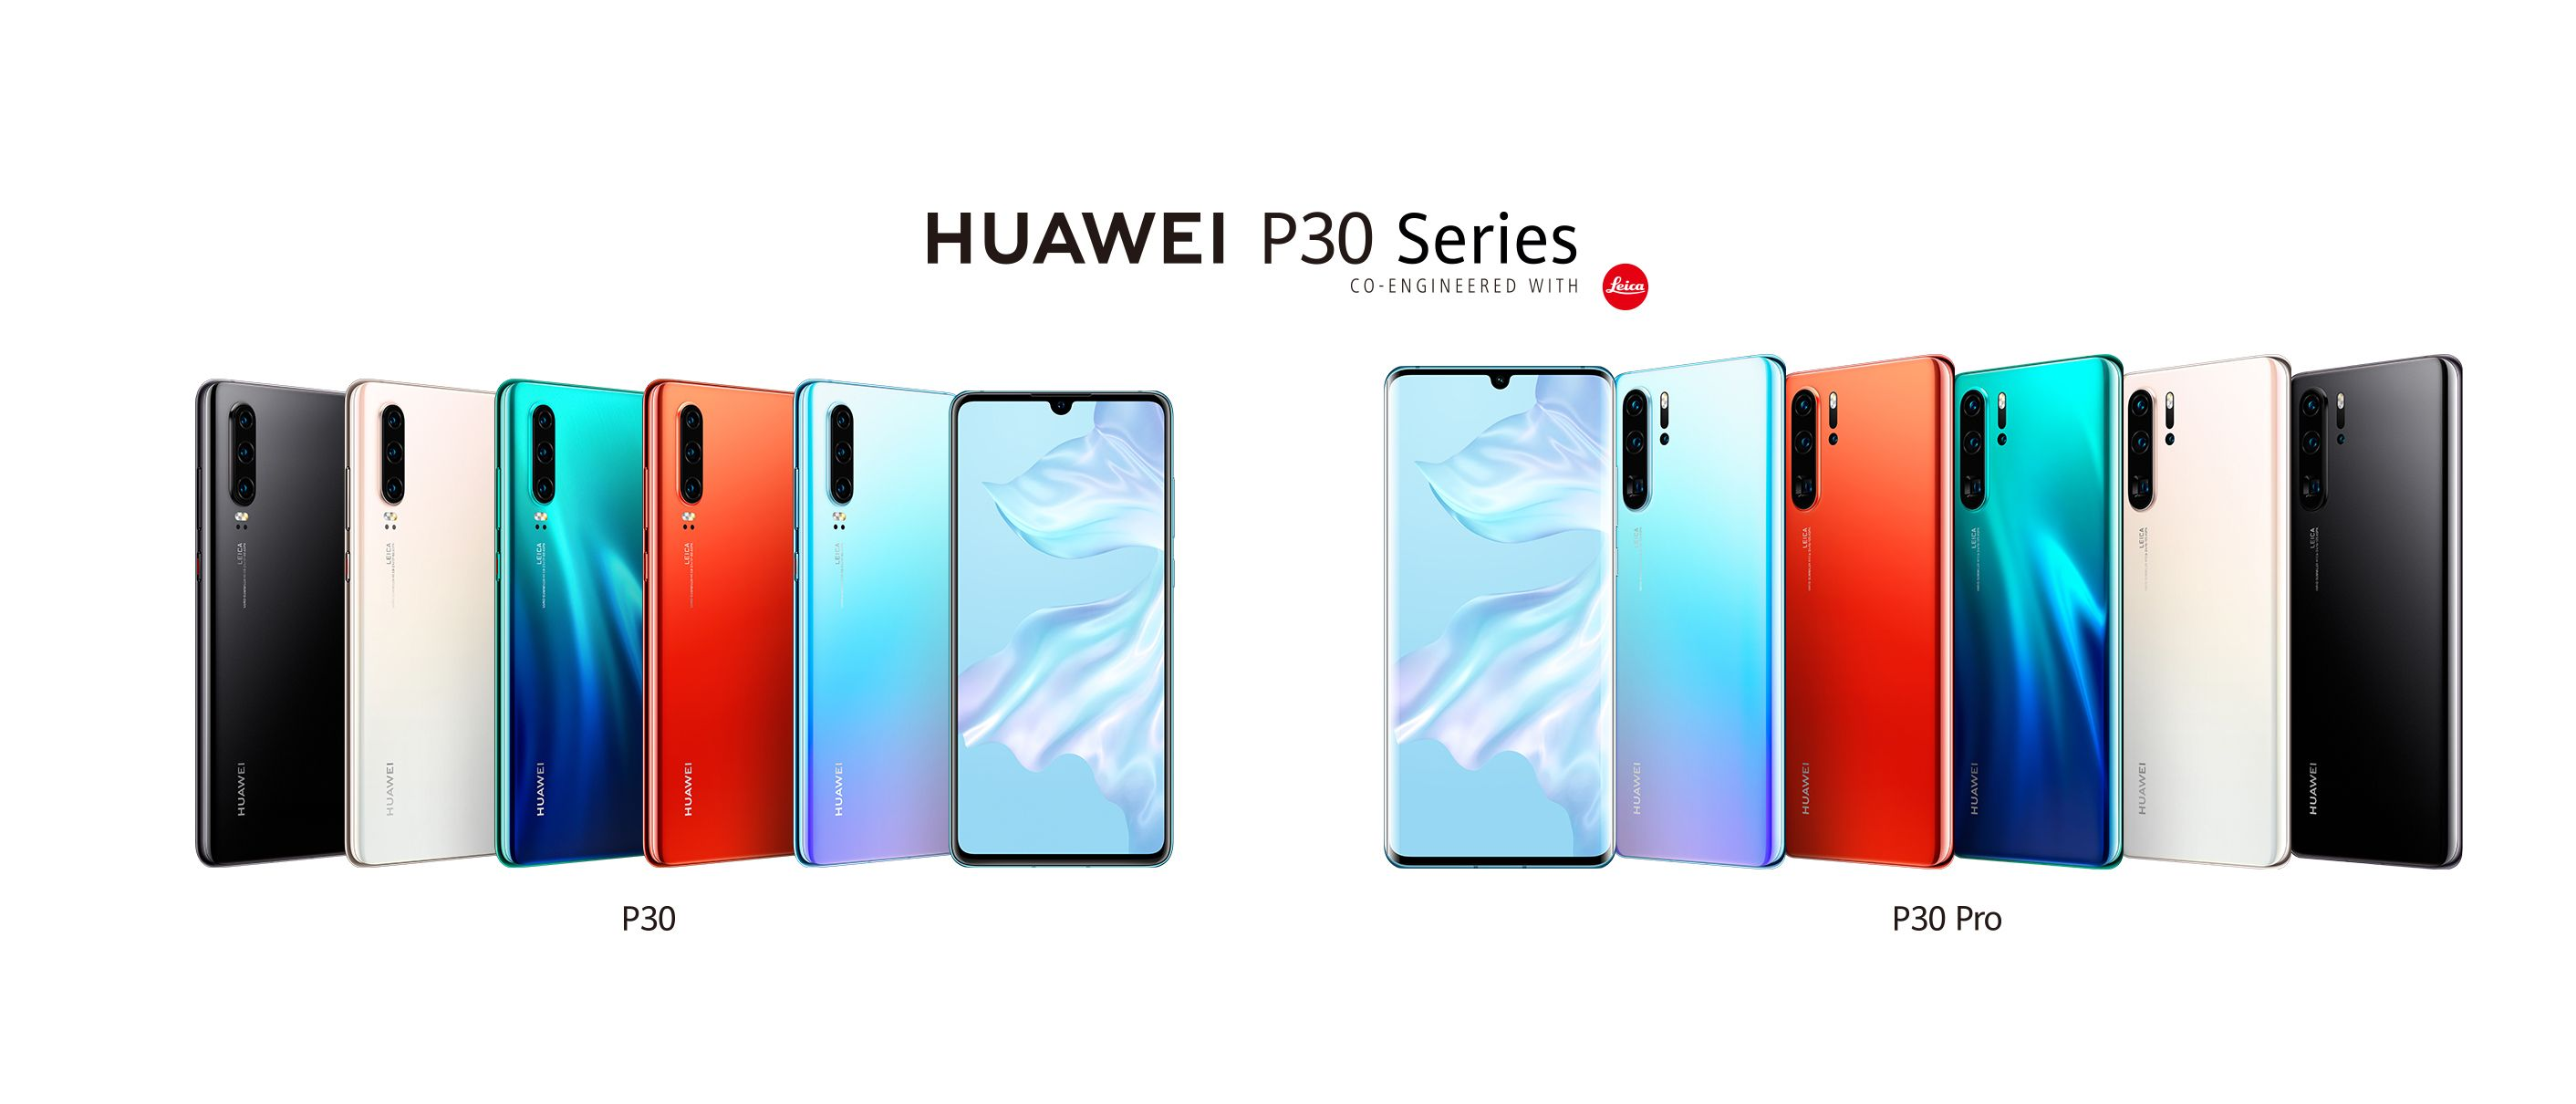 Save £240 on the Huawei P30 Pro with this EE deal